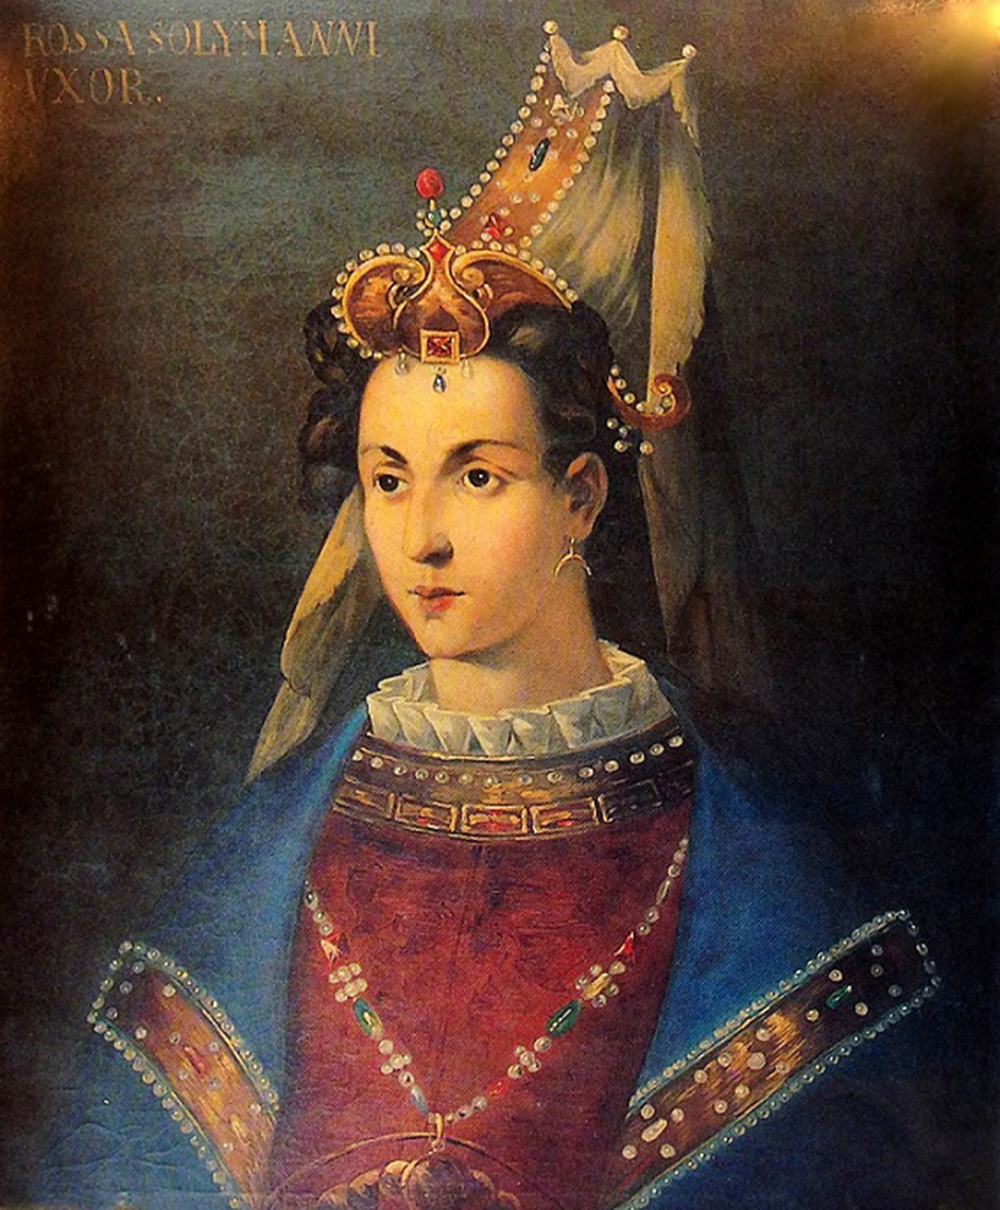 Portrait of Roxelana (1500–1558), c. eighteenth century. Topkapi Palace Museum.